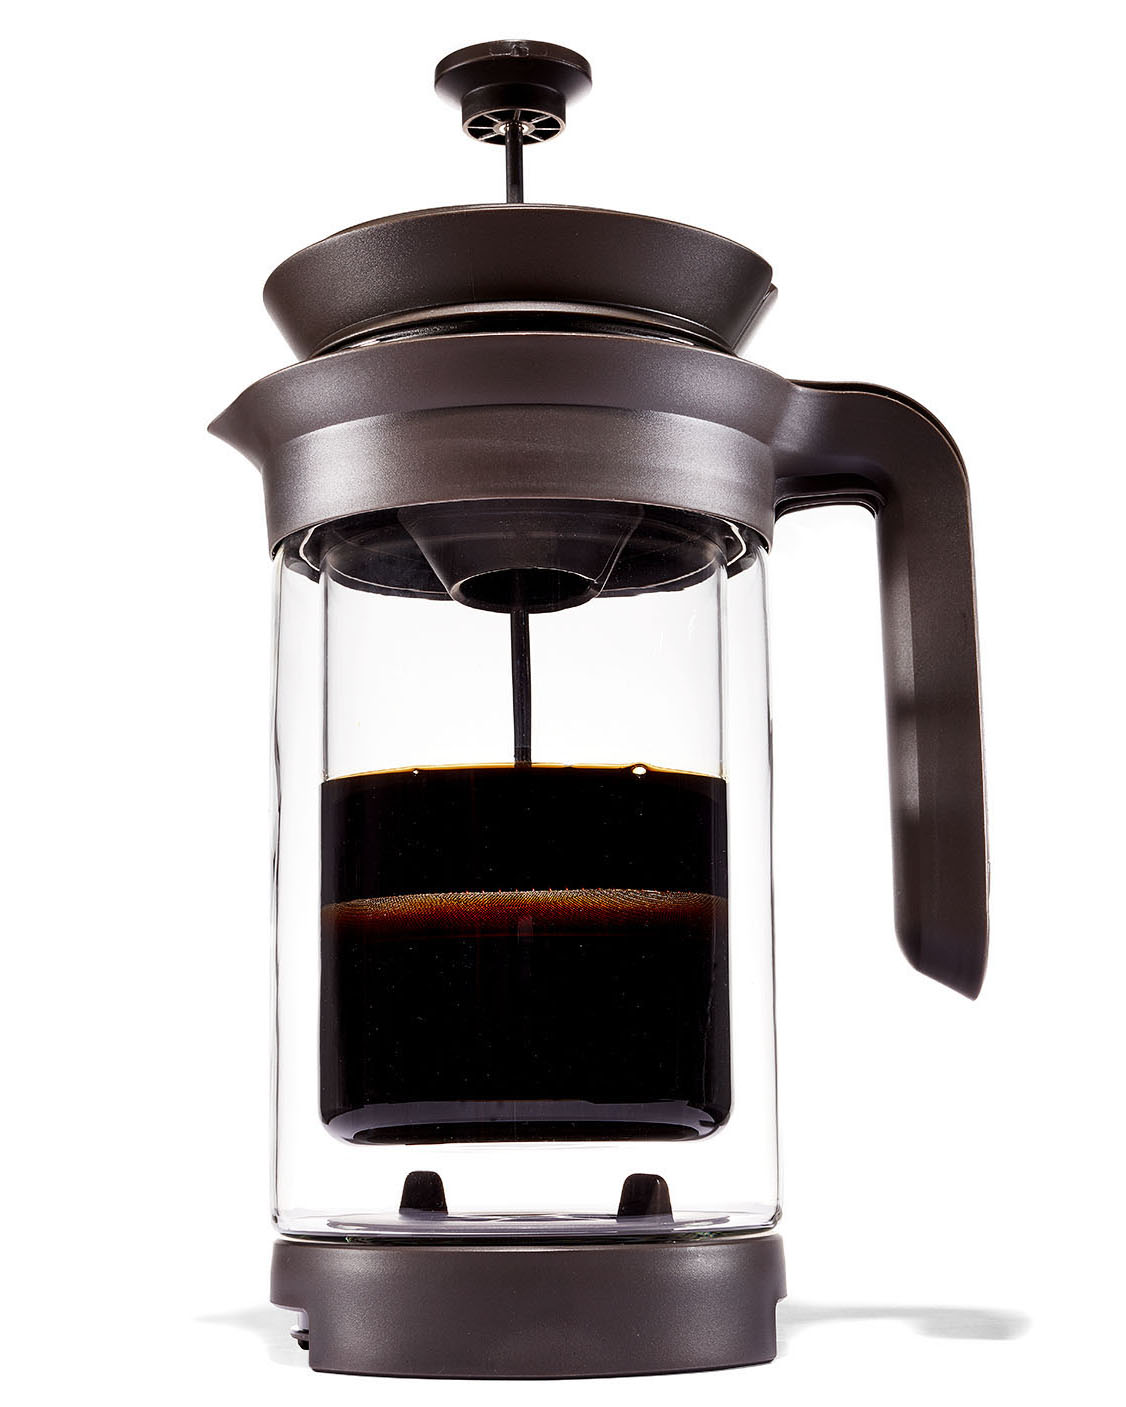 three in one coffee brewer french press, pour-over, and cold-brew